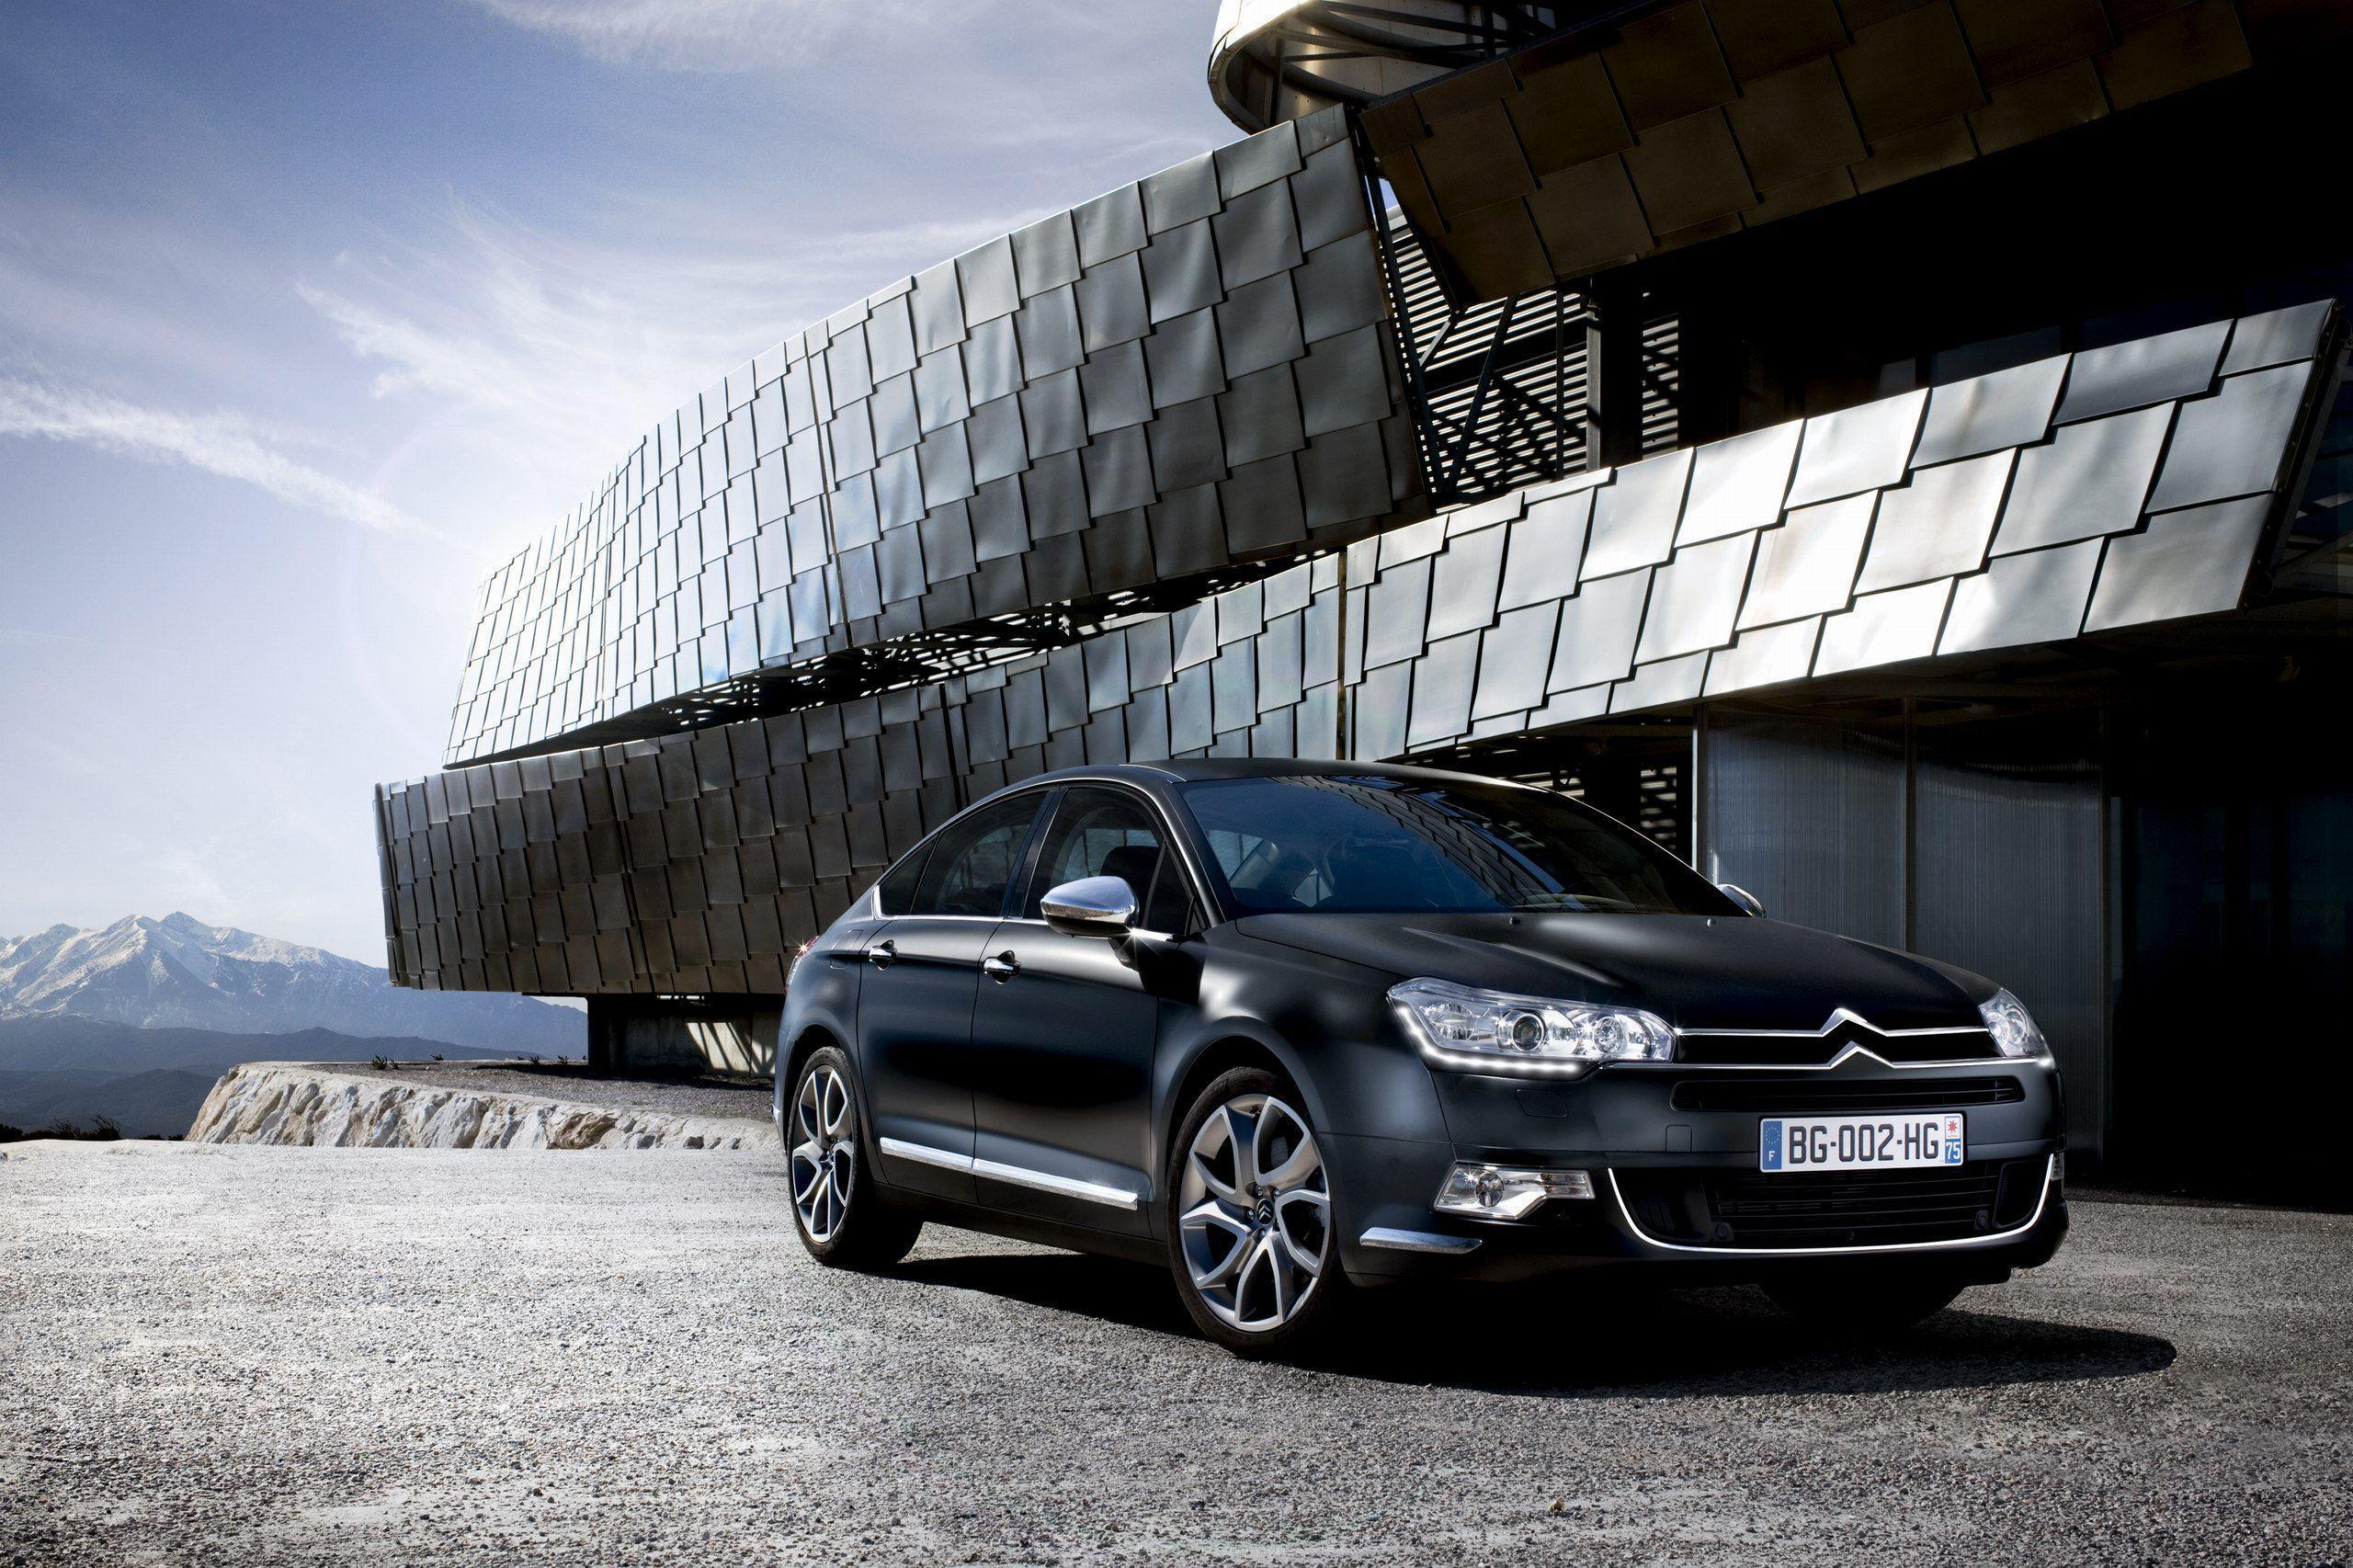 Citroen Pictures Wallpaper for PC | Full HD Pictures